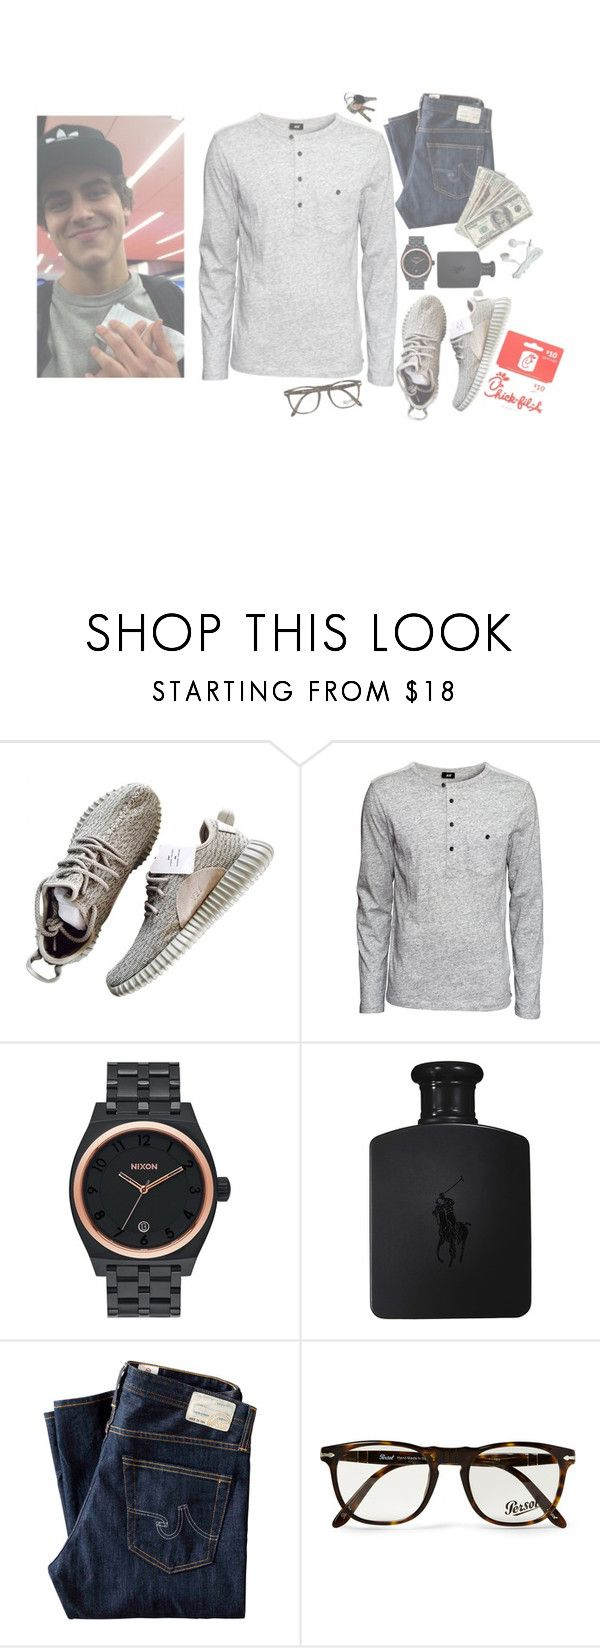 """I'm going to chick fil a at lunch"" by kingkxng ❤ liked on Polyvore featuring interior, interiors, interior design, home, home decor, interior decorating, H&M, Nixon, Ralph Lauren and AG Adriano Goldschmied"